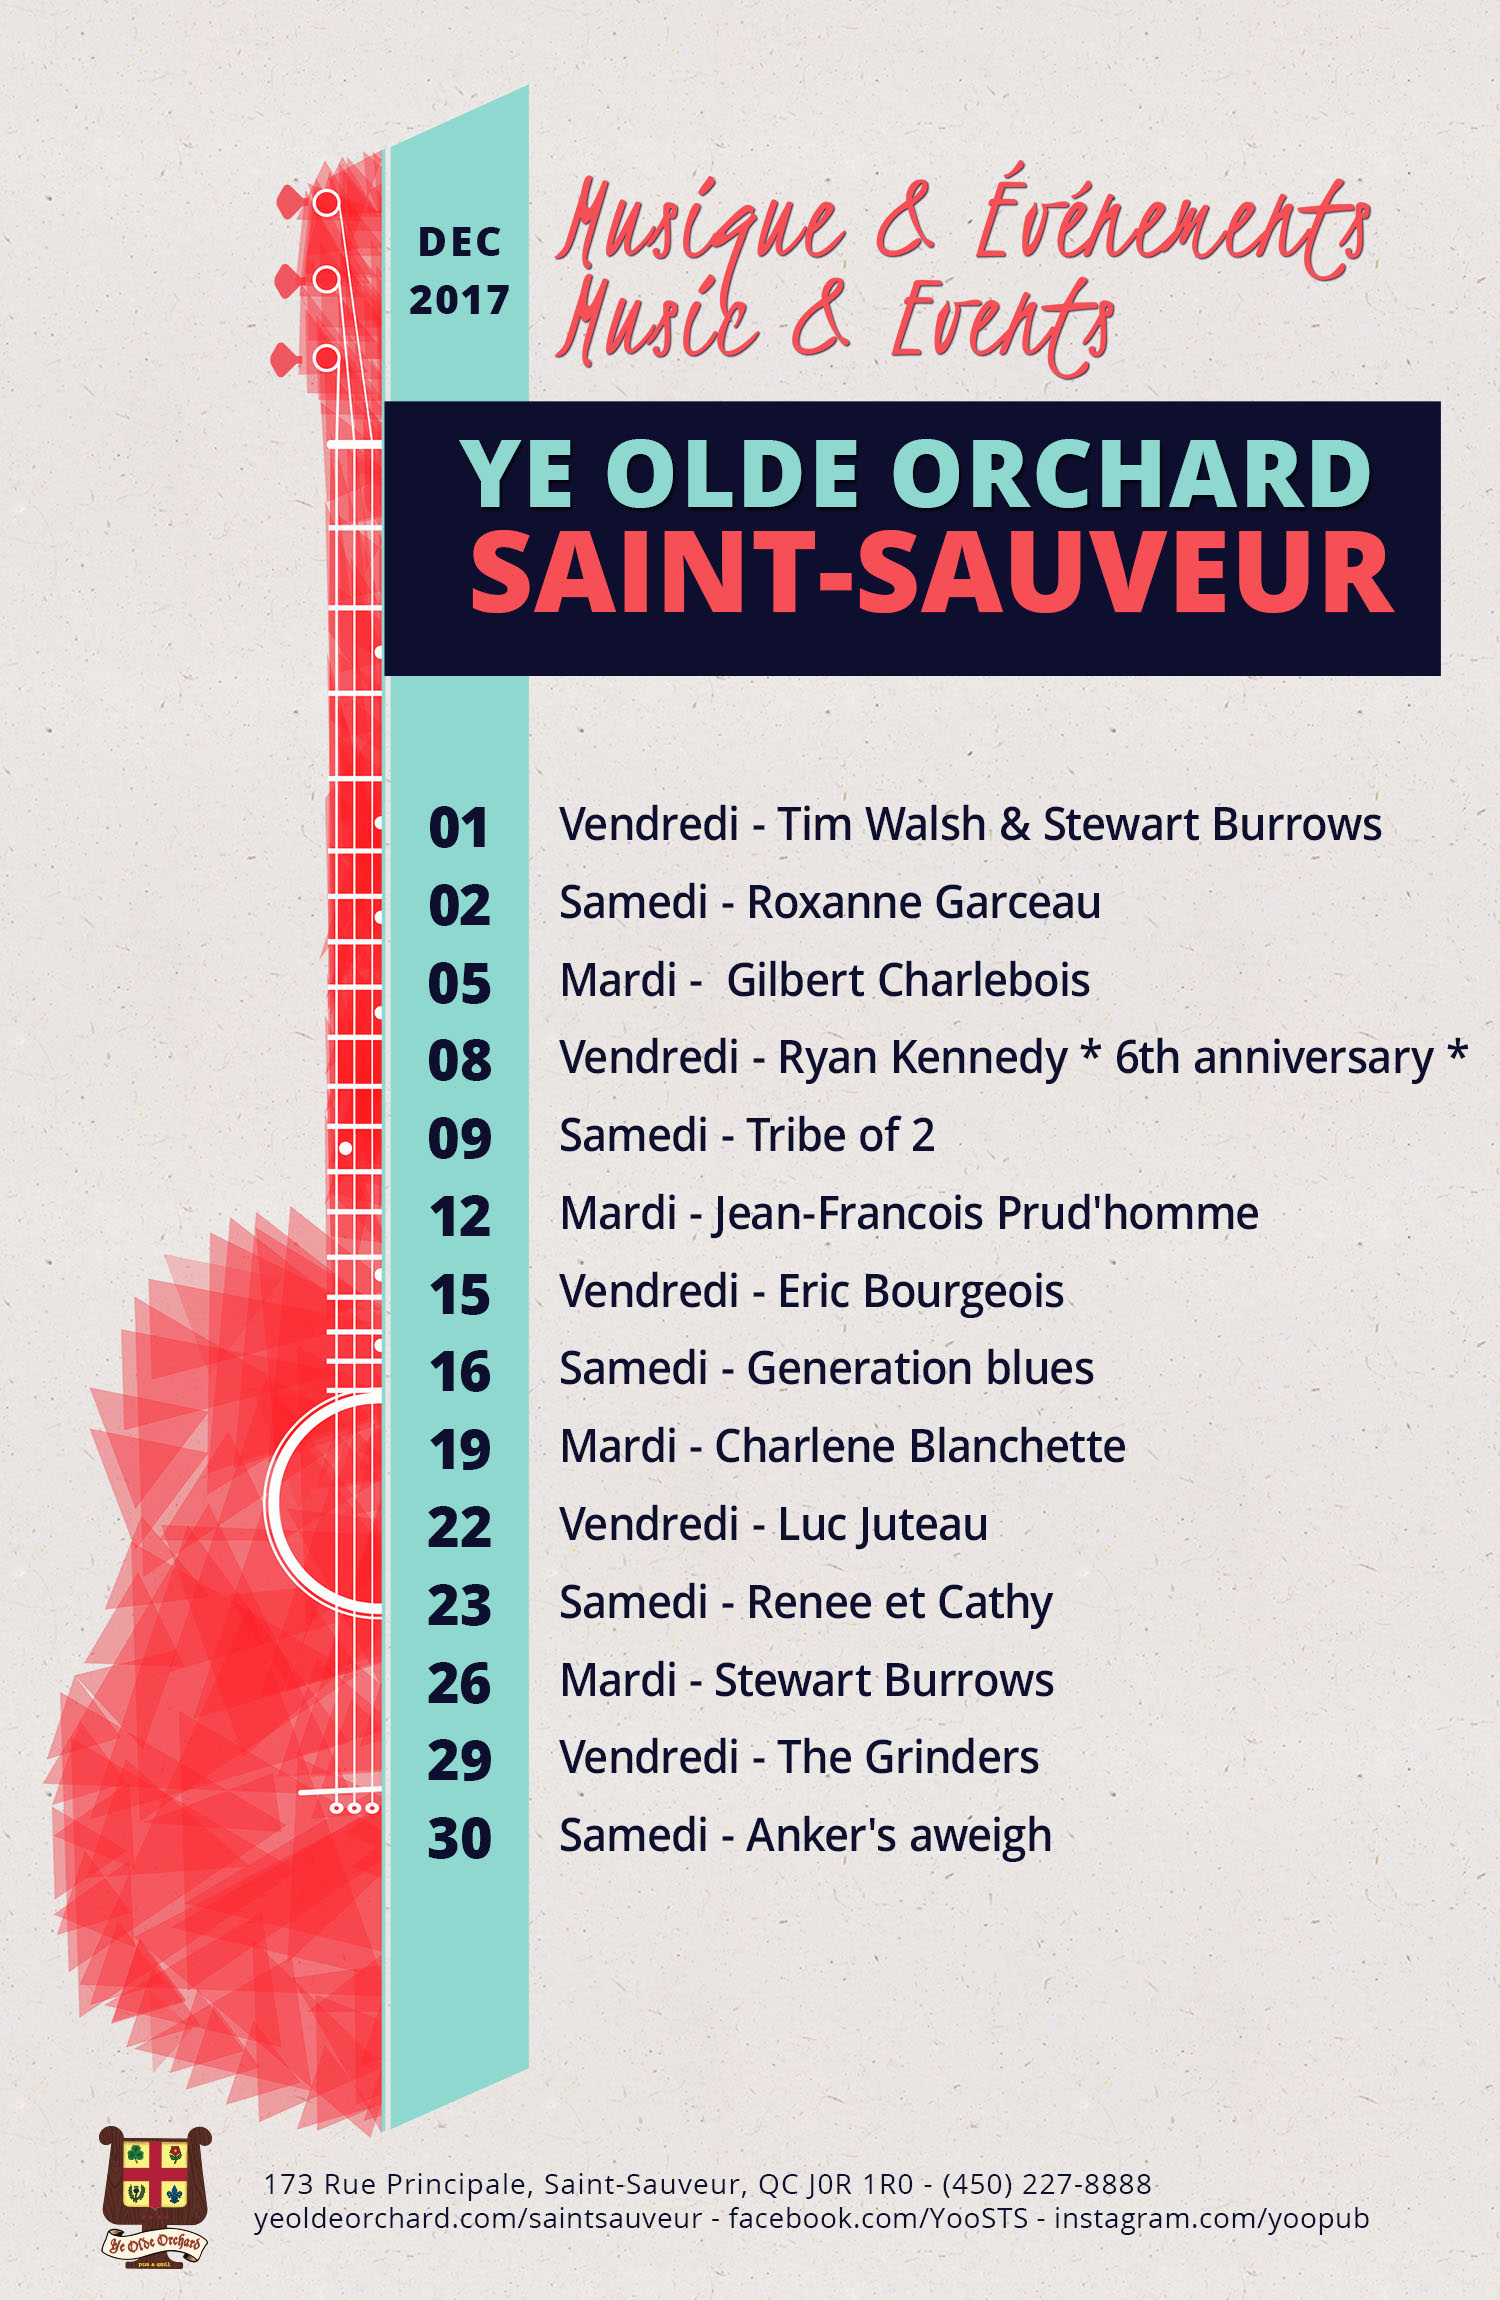 ye-olde-orchard-pub-music-and-events-calendar-SaintSauveur-DEC-PRINT